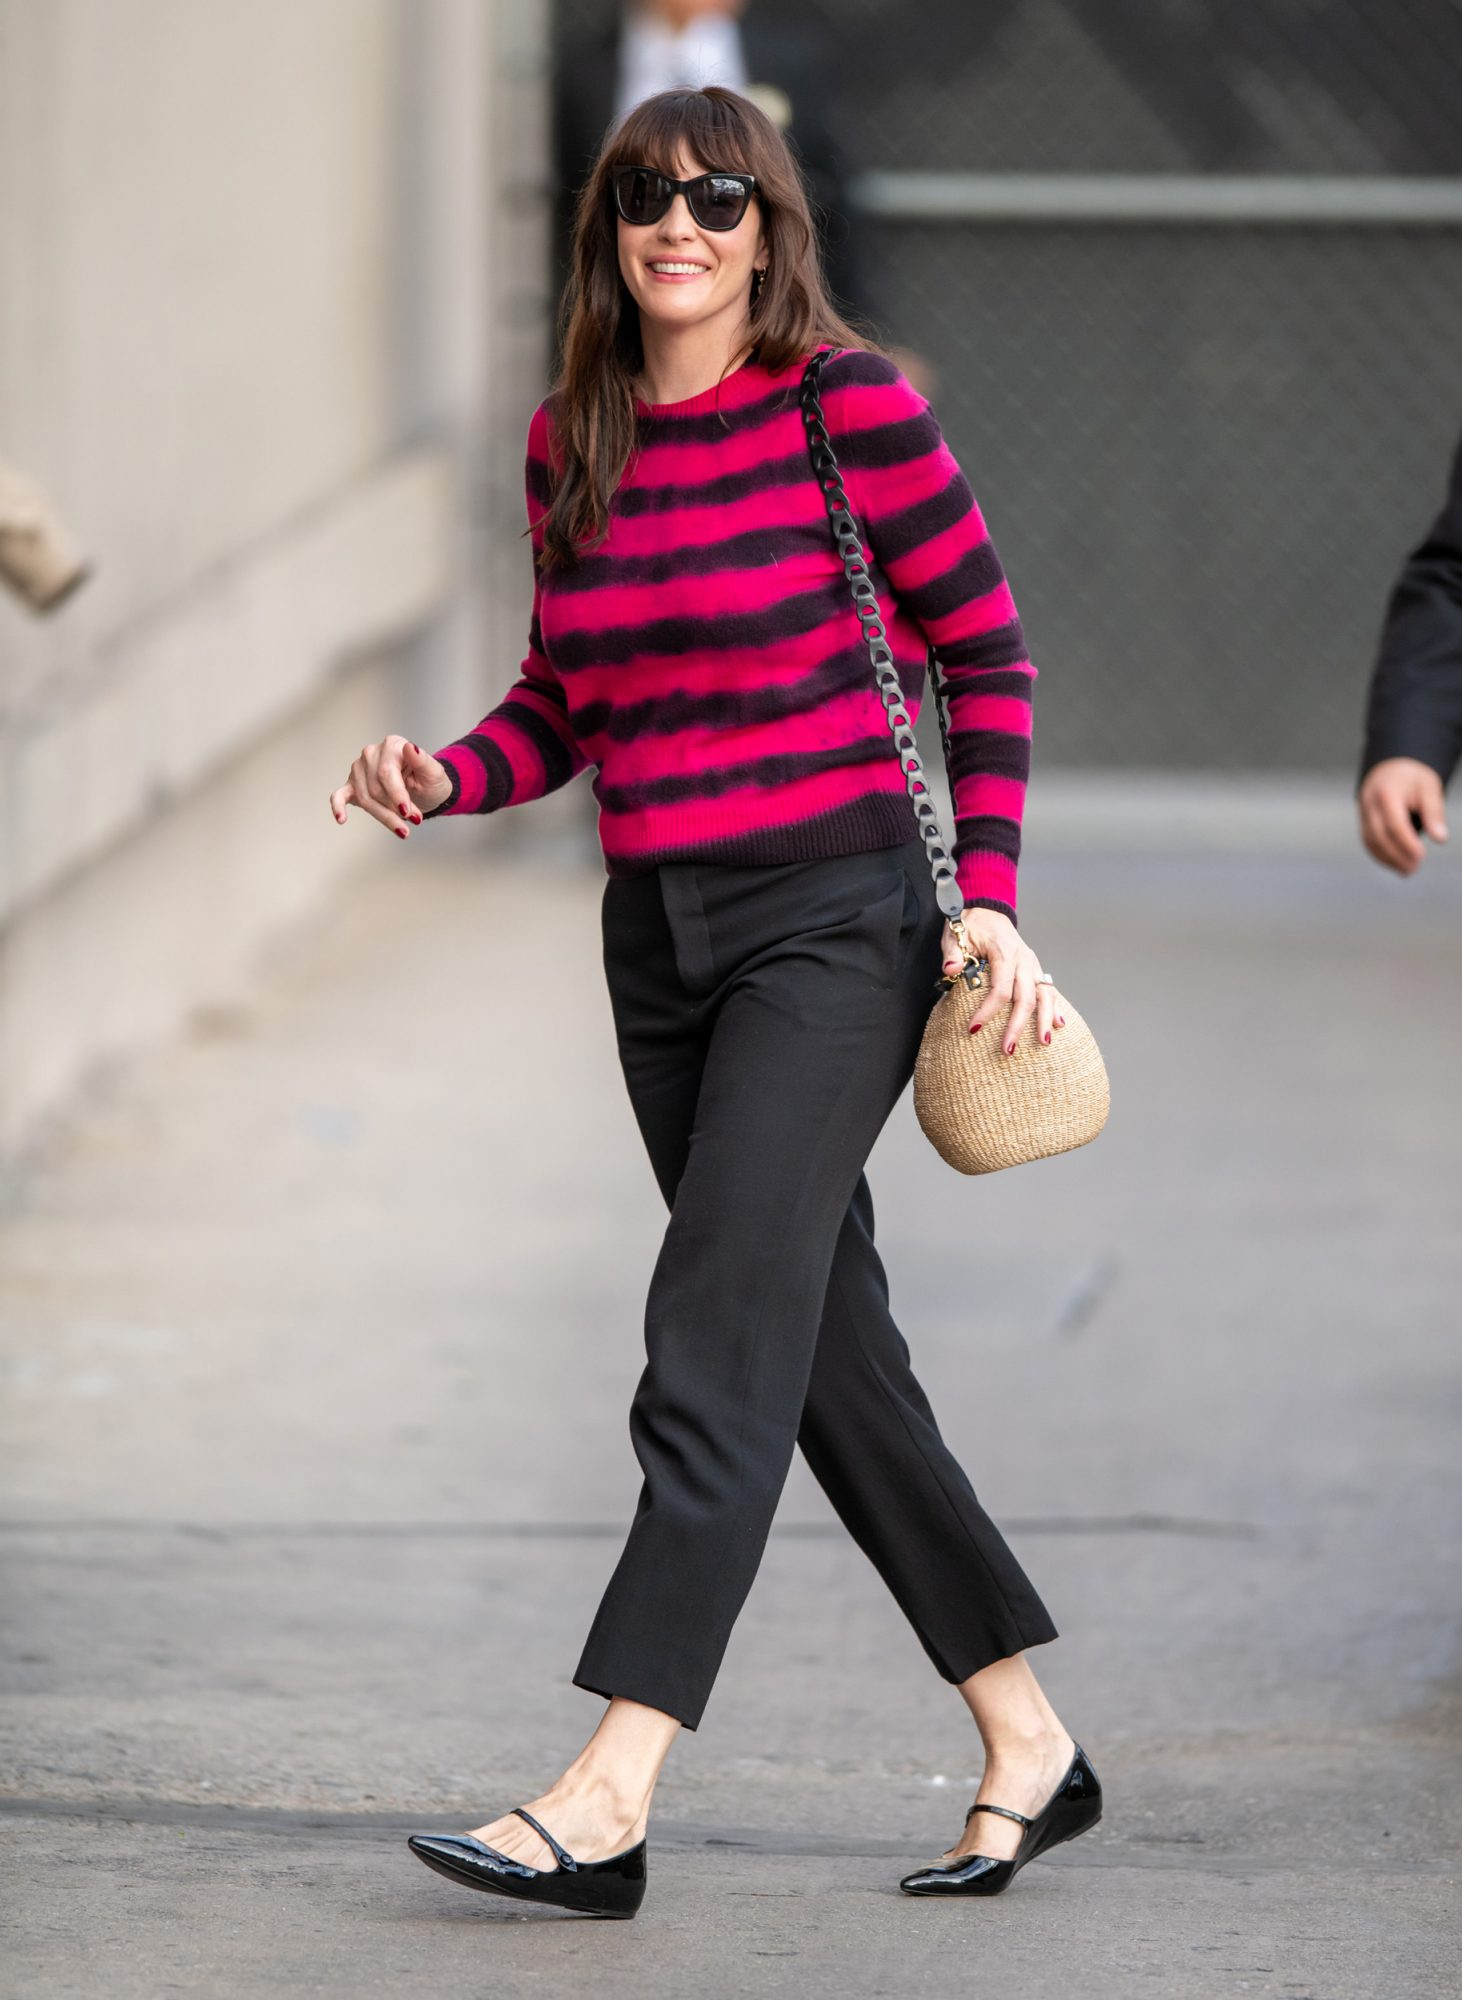 Is it me or is every celeb wearing this sensible shoe trend right now?